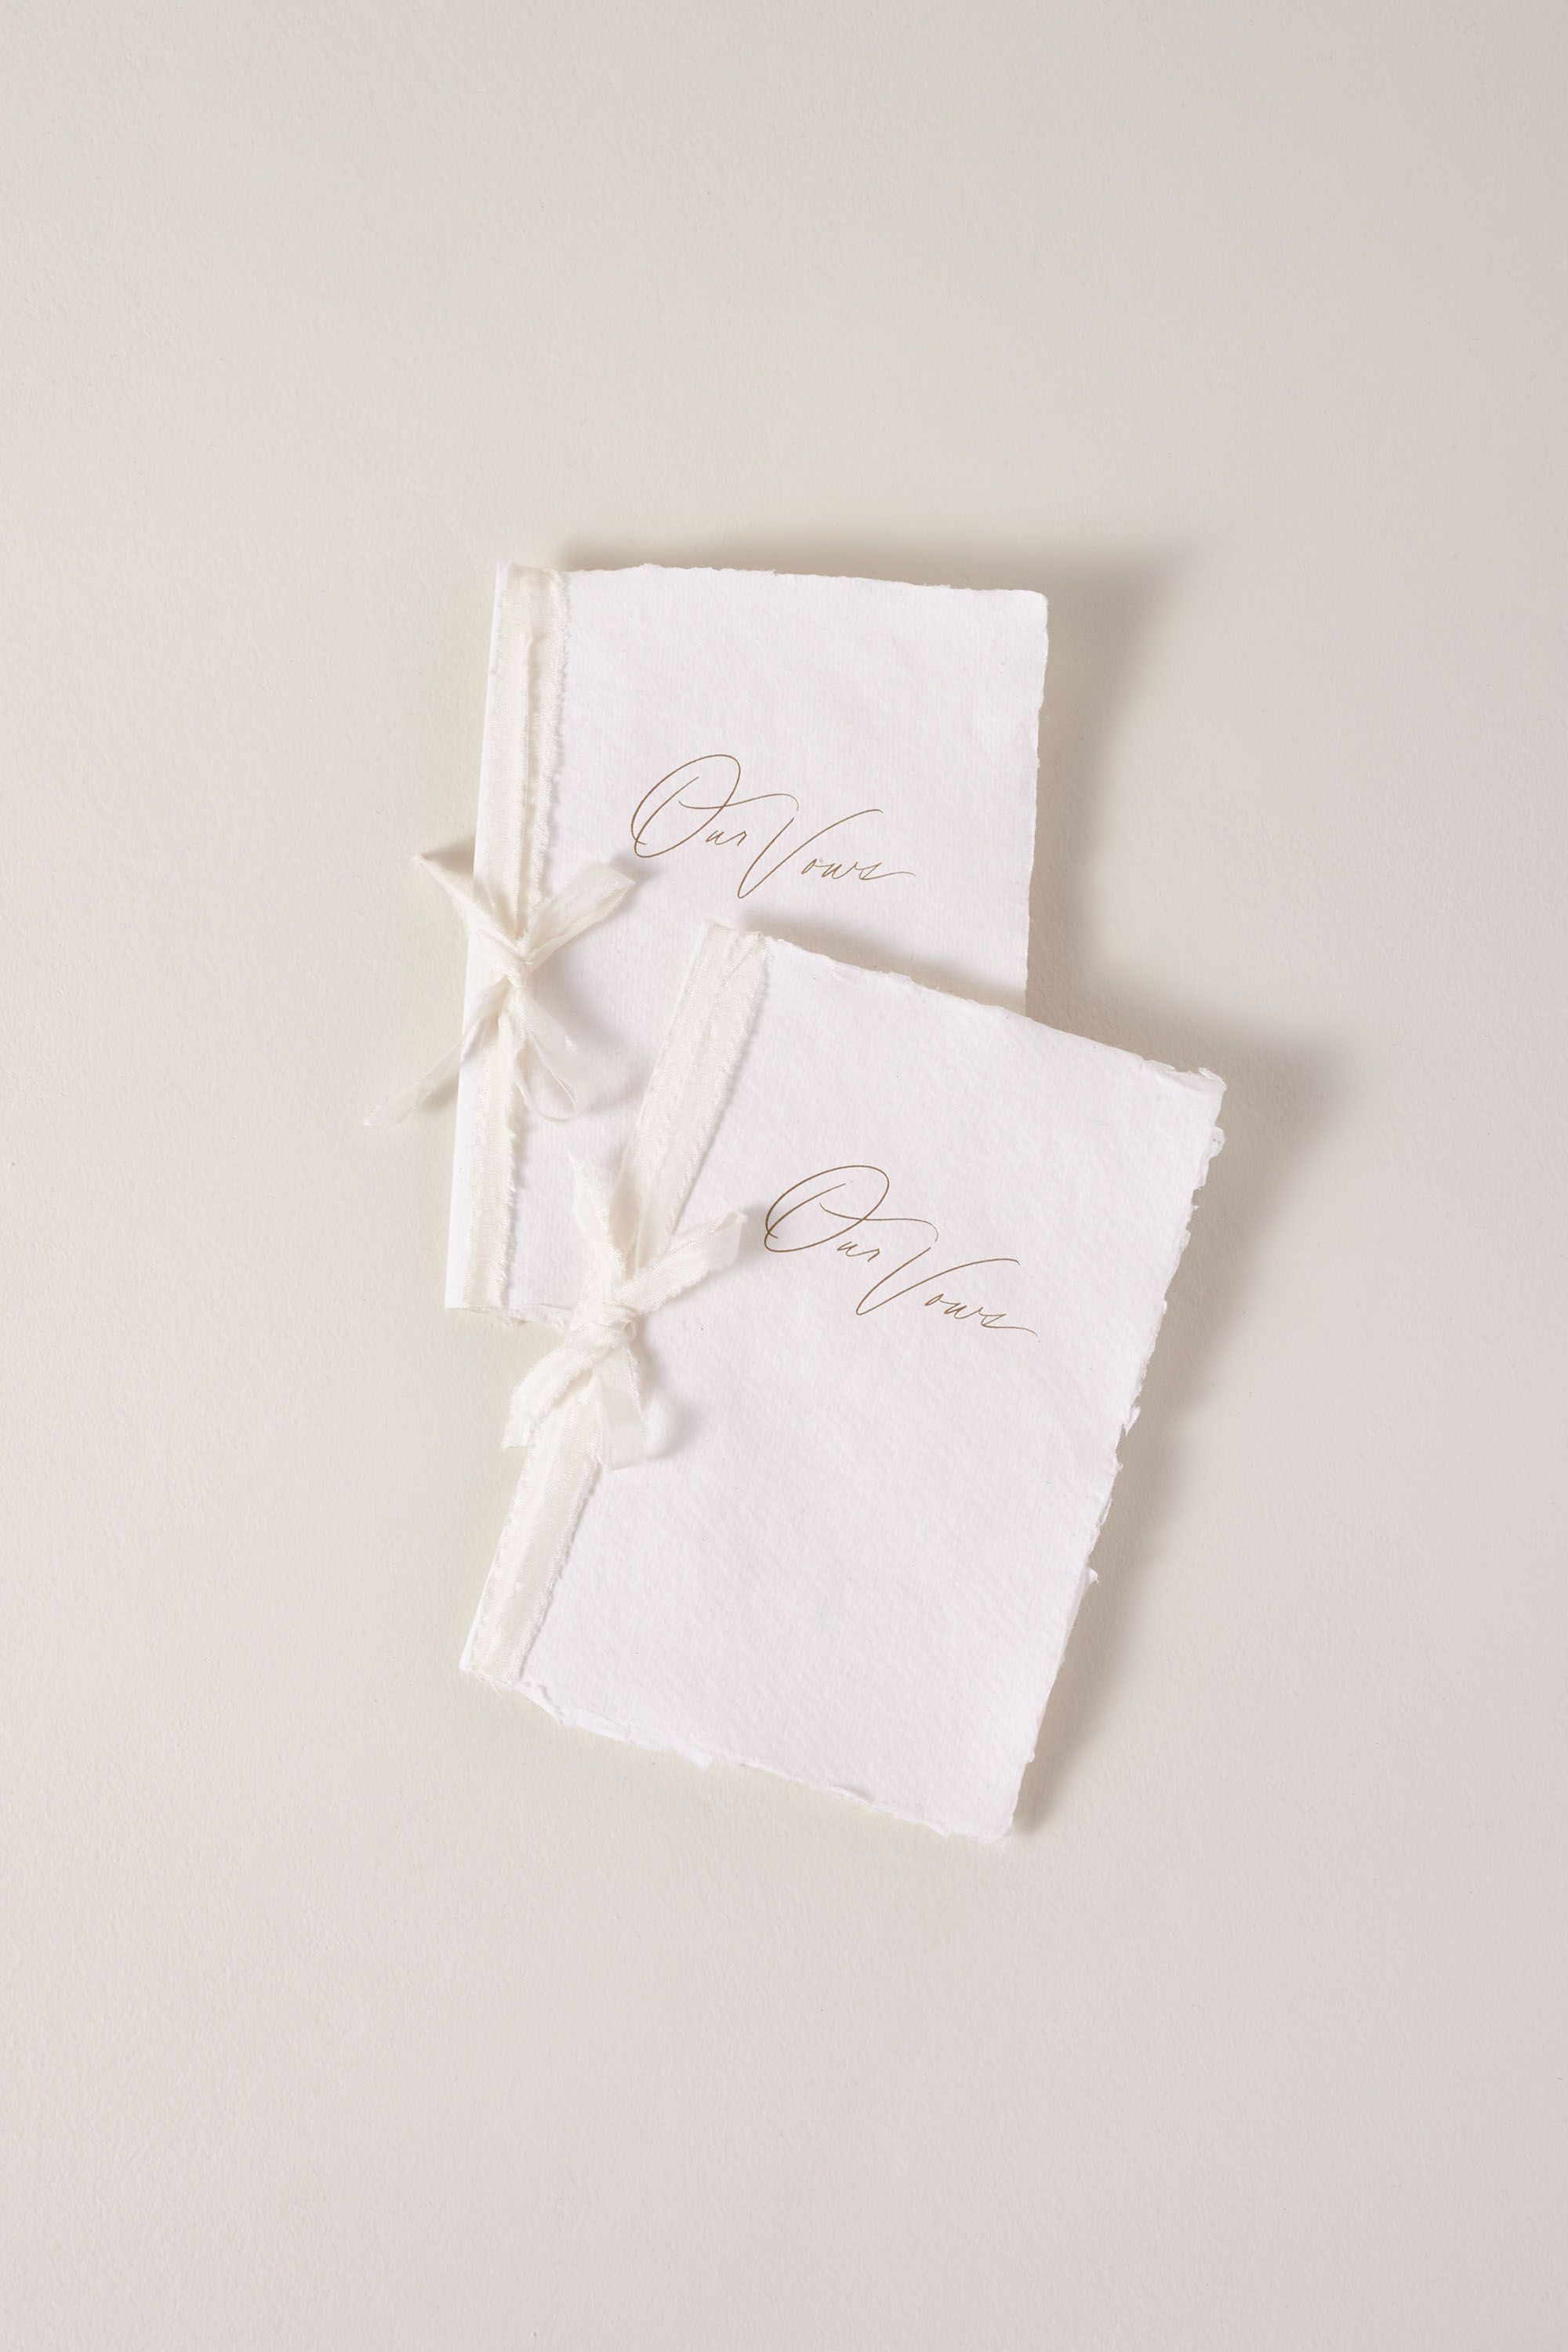 Handmade Paper Vow Journals